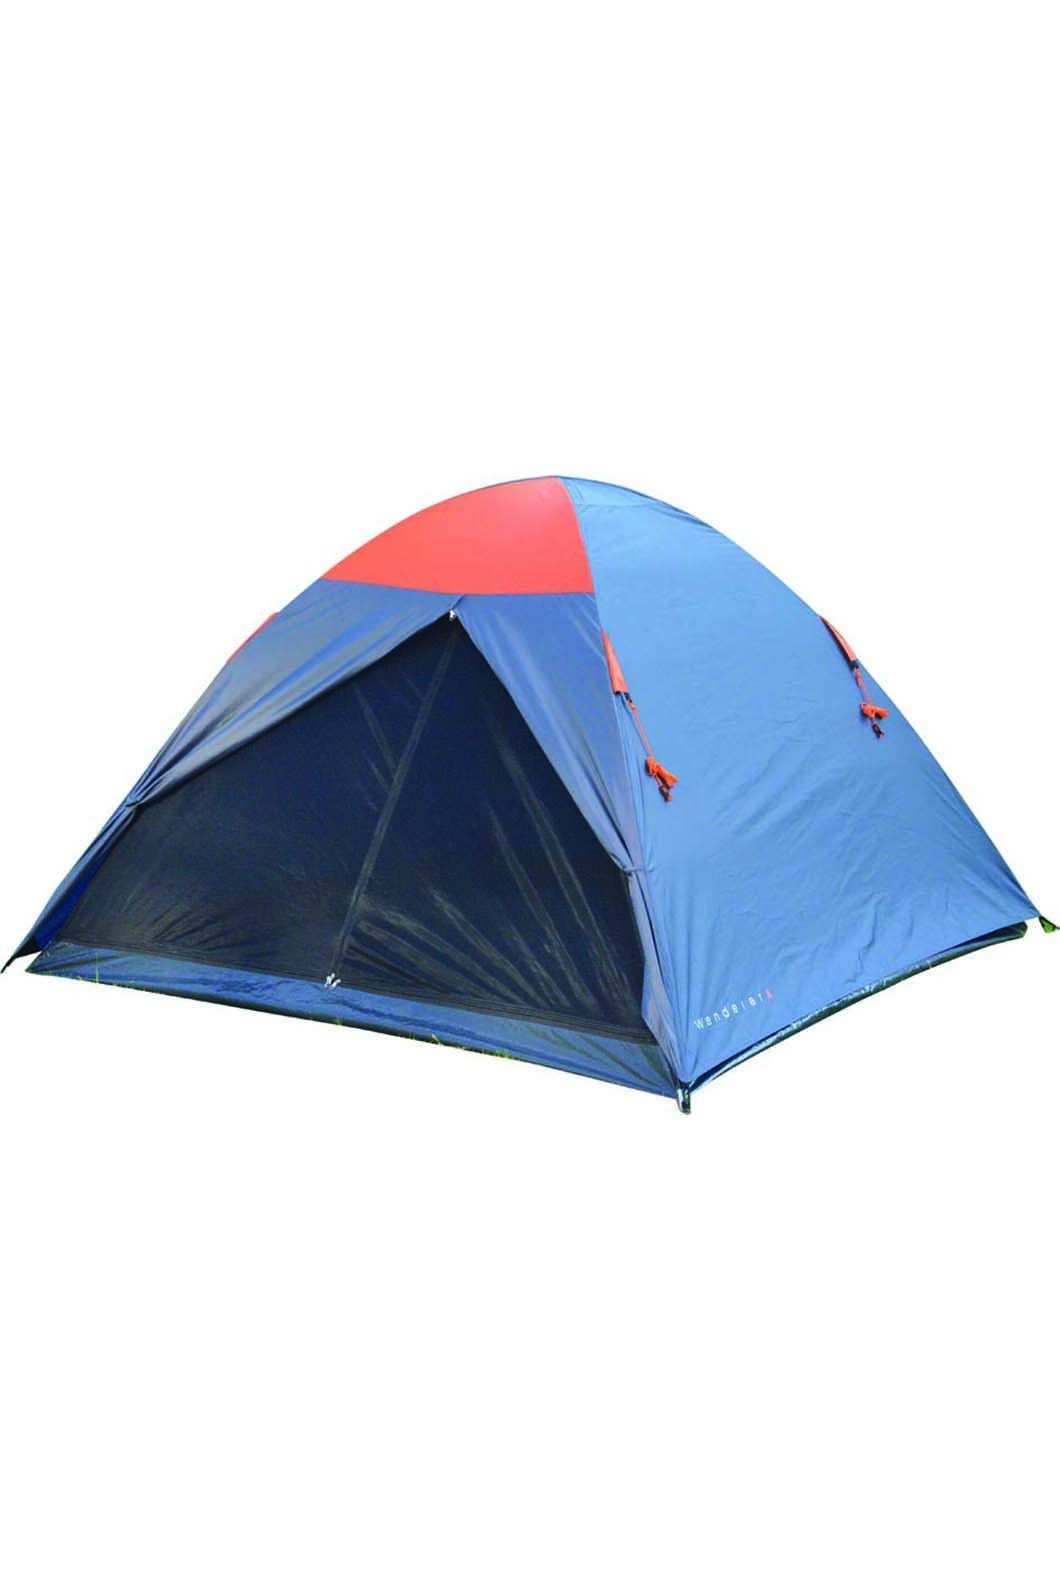 Carnarvon Dome Tent 4 Person, None, hi-res